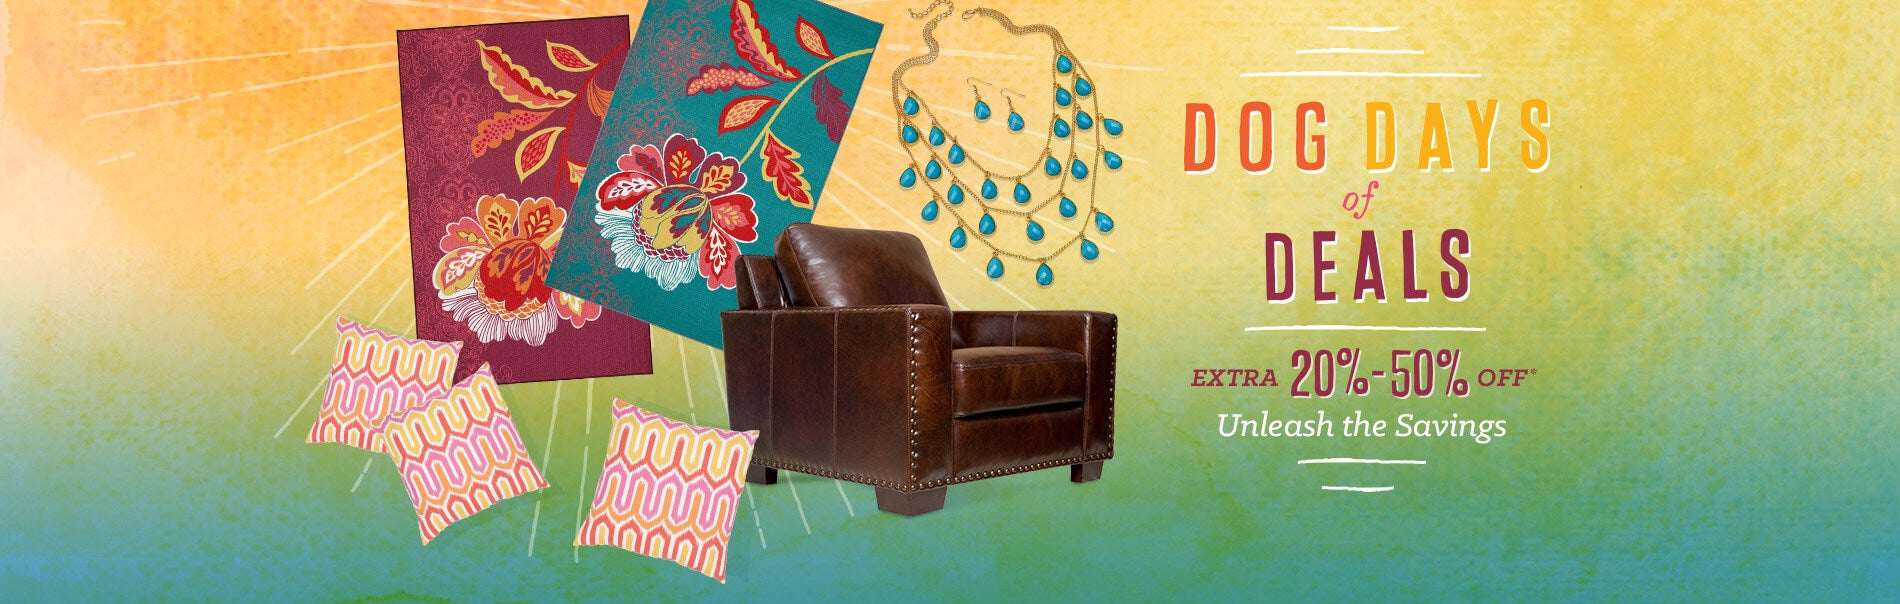 Dog Days of Deals Extra 20-50% off Unleash The Savings